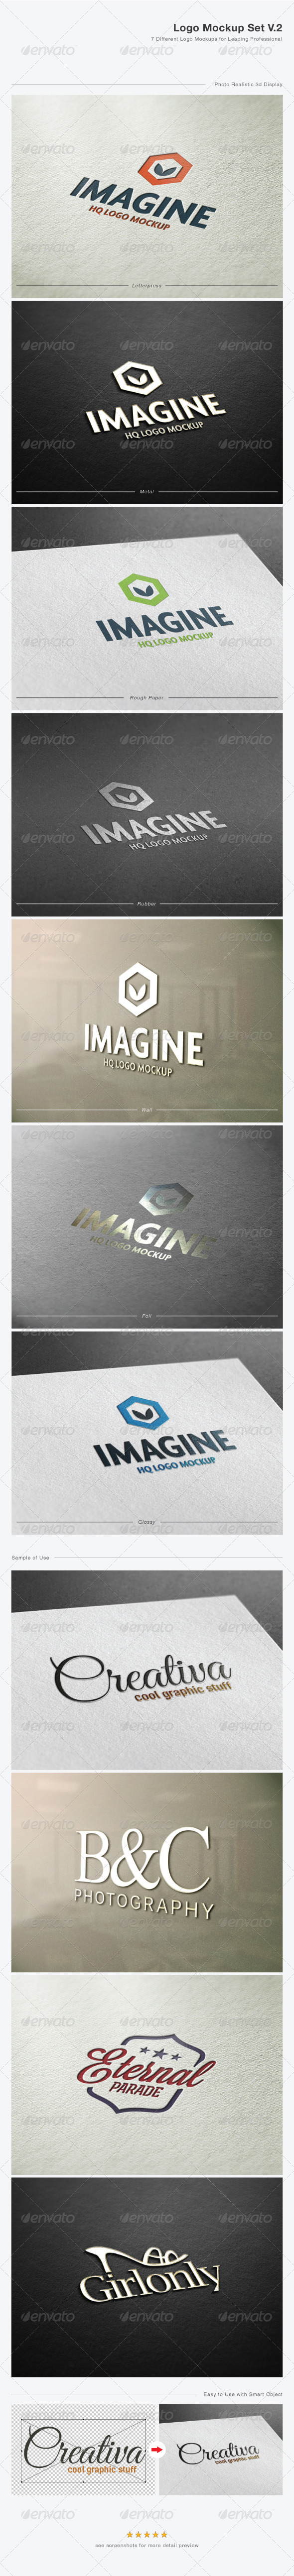 Logo Mock-Up Set V.2 - Logo Product Mock-Ups